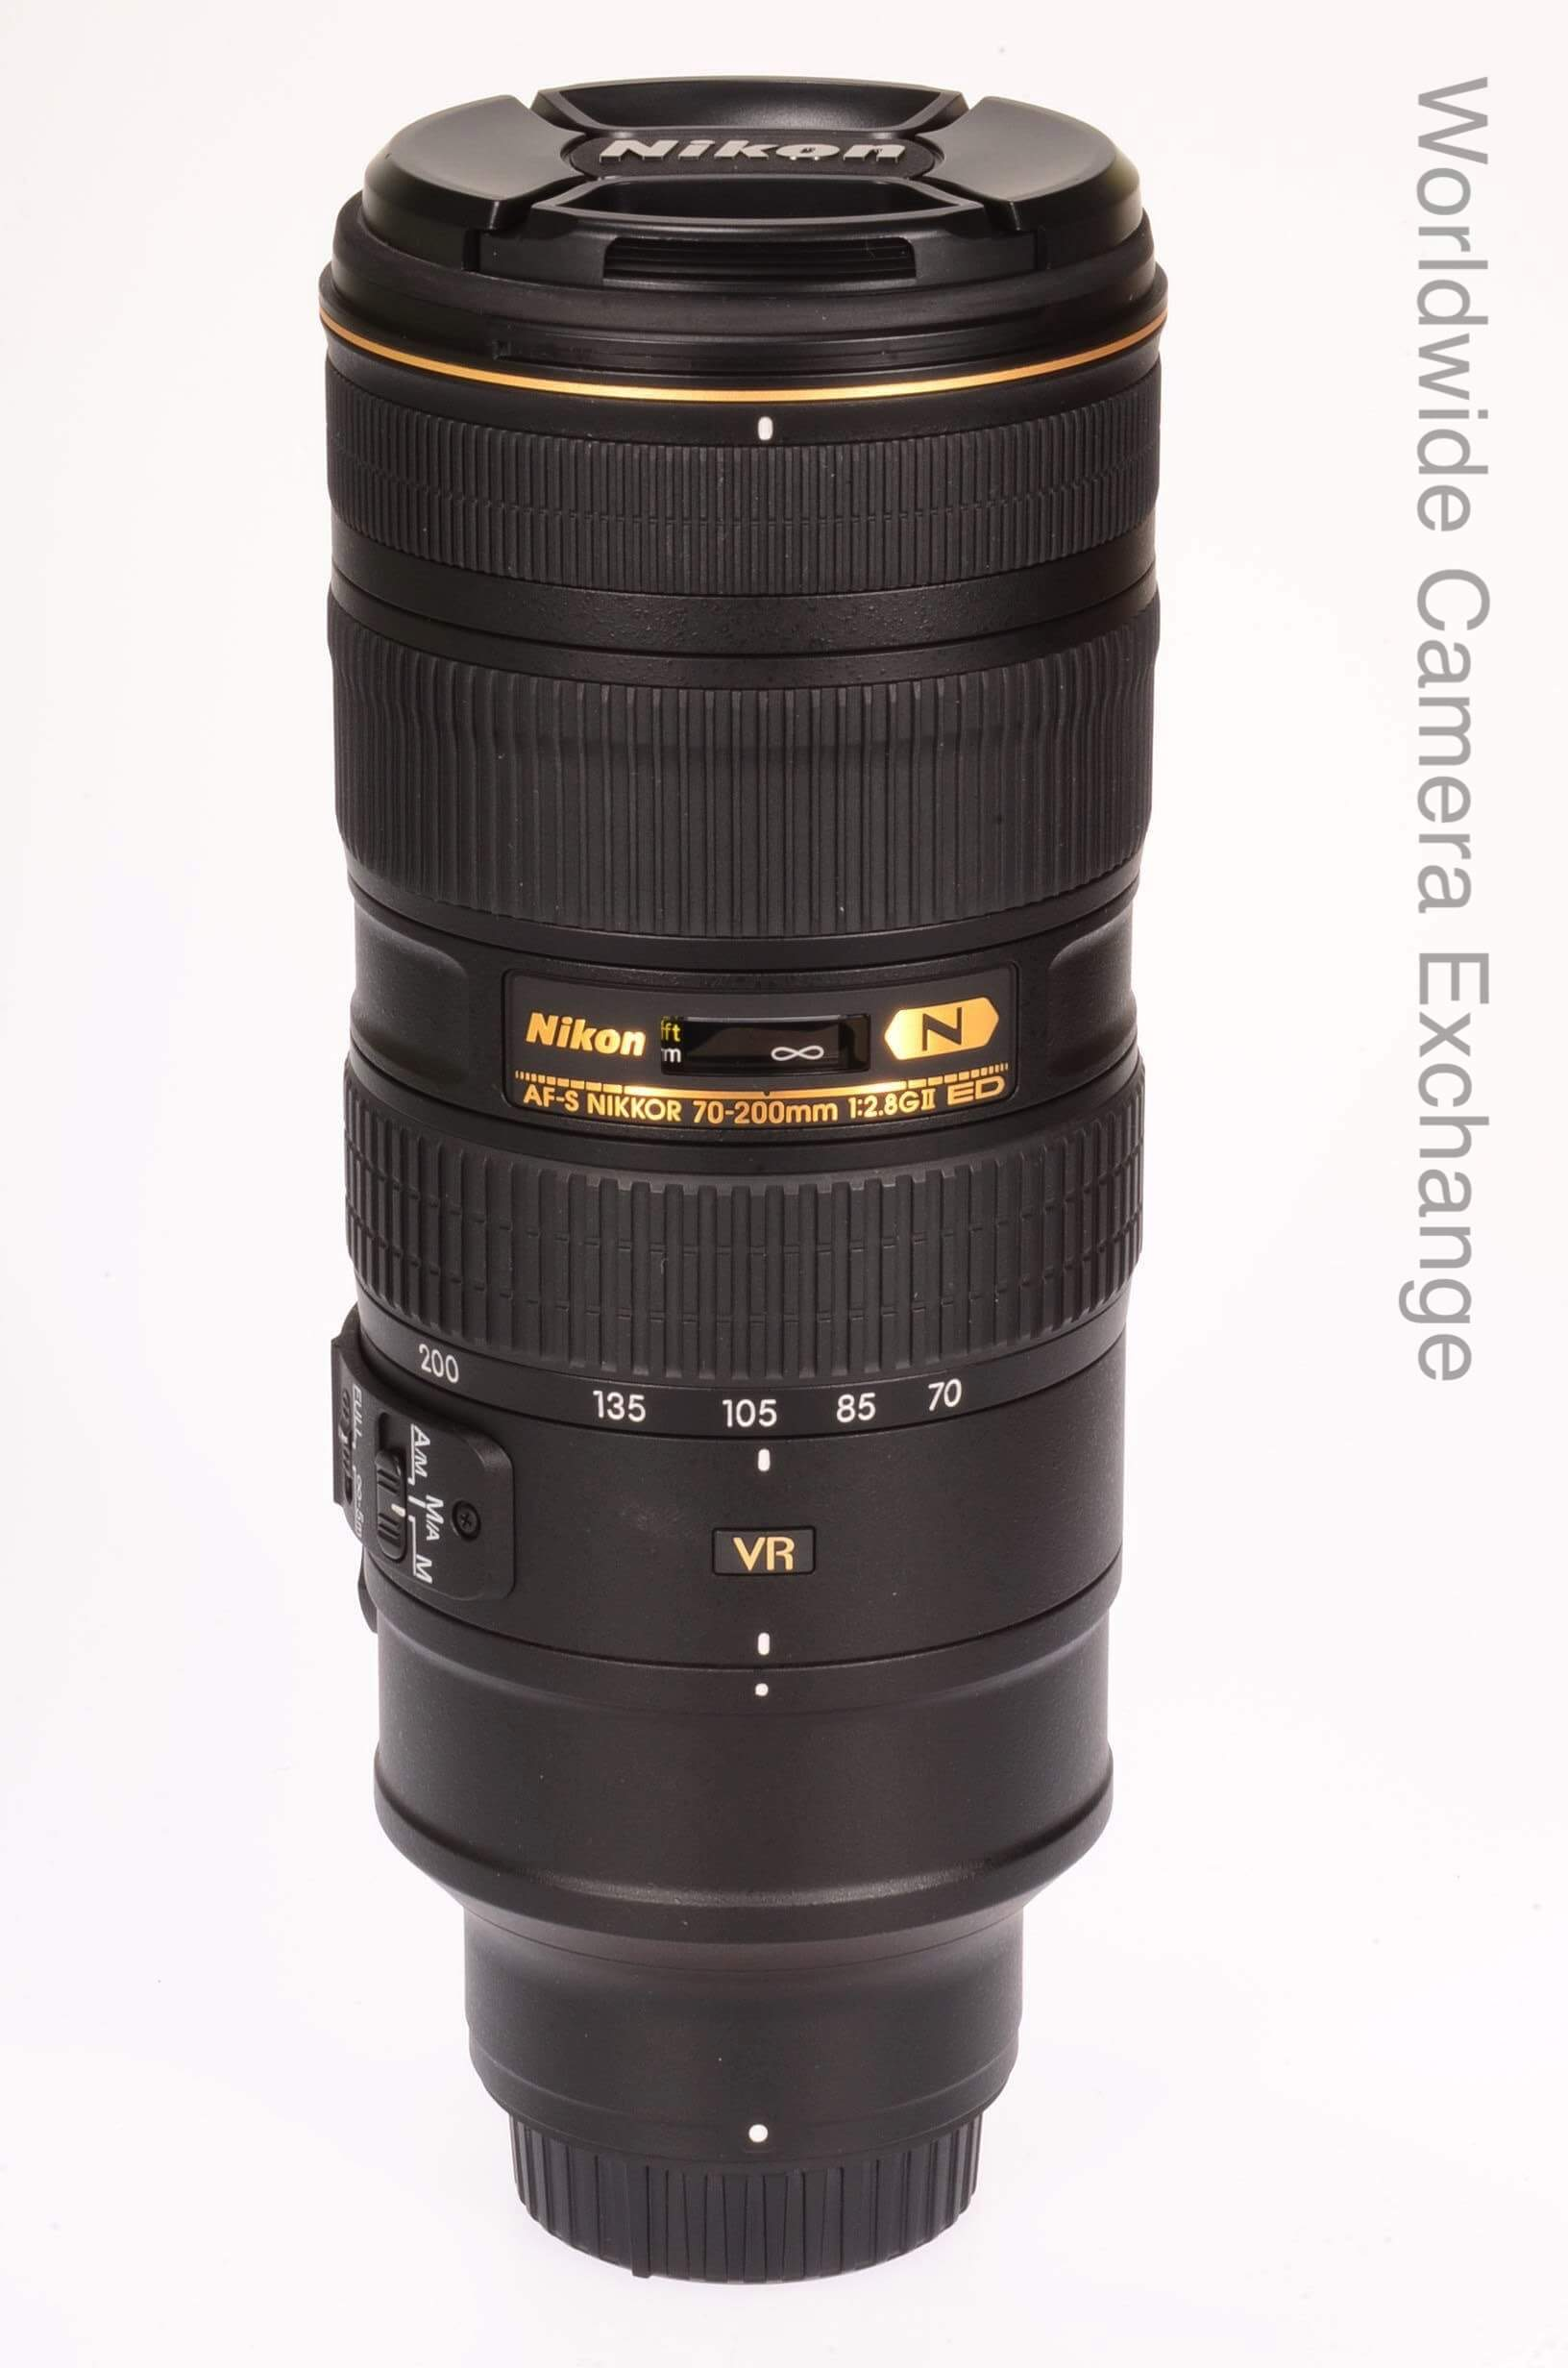 Nikon 70-200 f2.8 AF-S VR II, UK supplied, mint and boxed